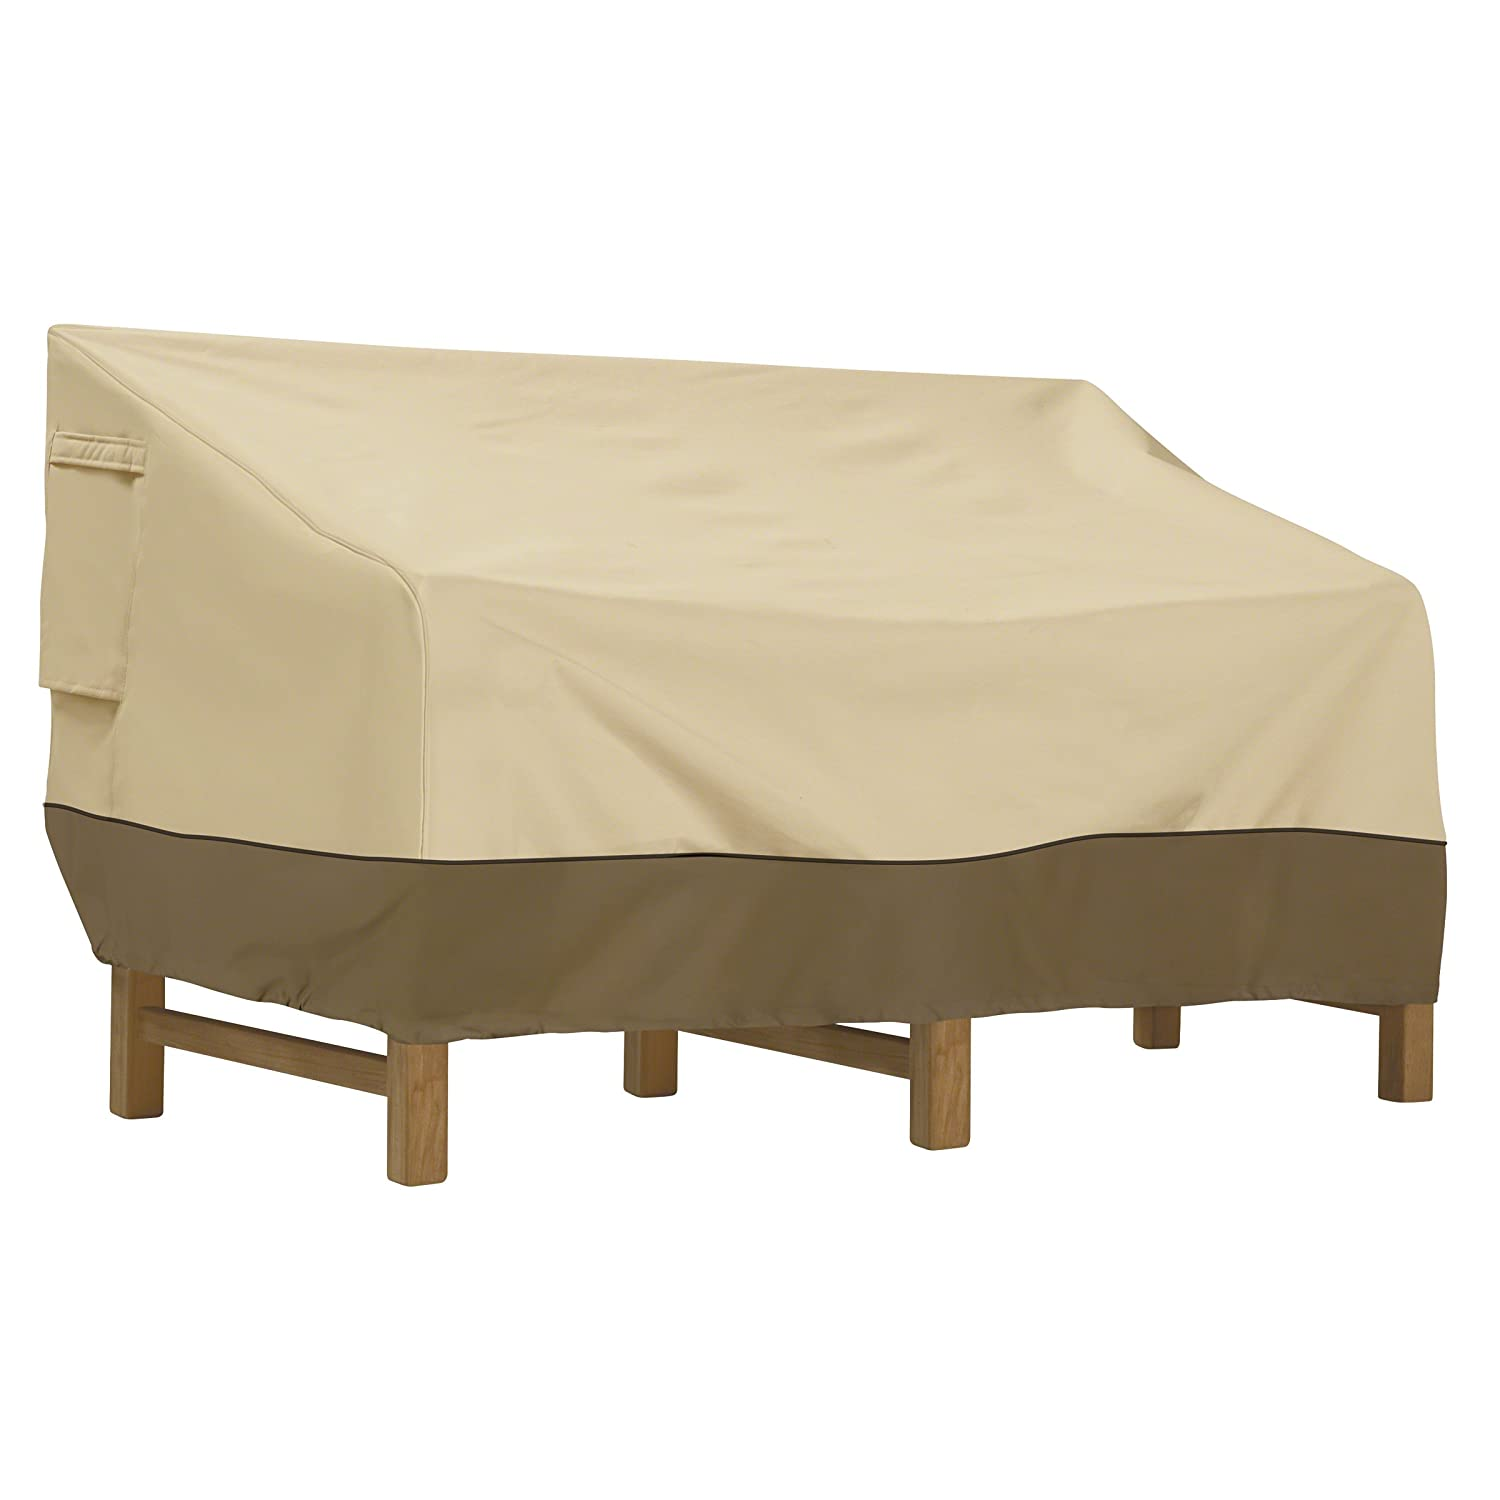 Classic Accessories 55-413-031501-00 Veranda Patio Deep Seat Sofa Cover, Medium, Pebble